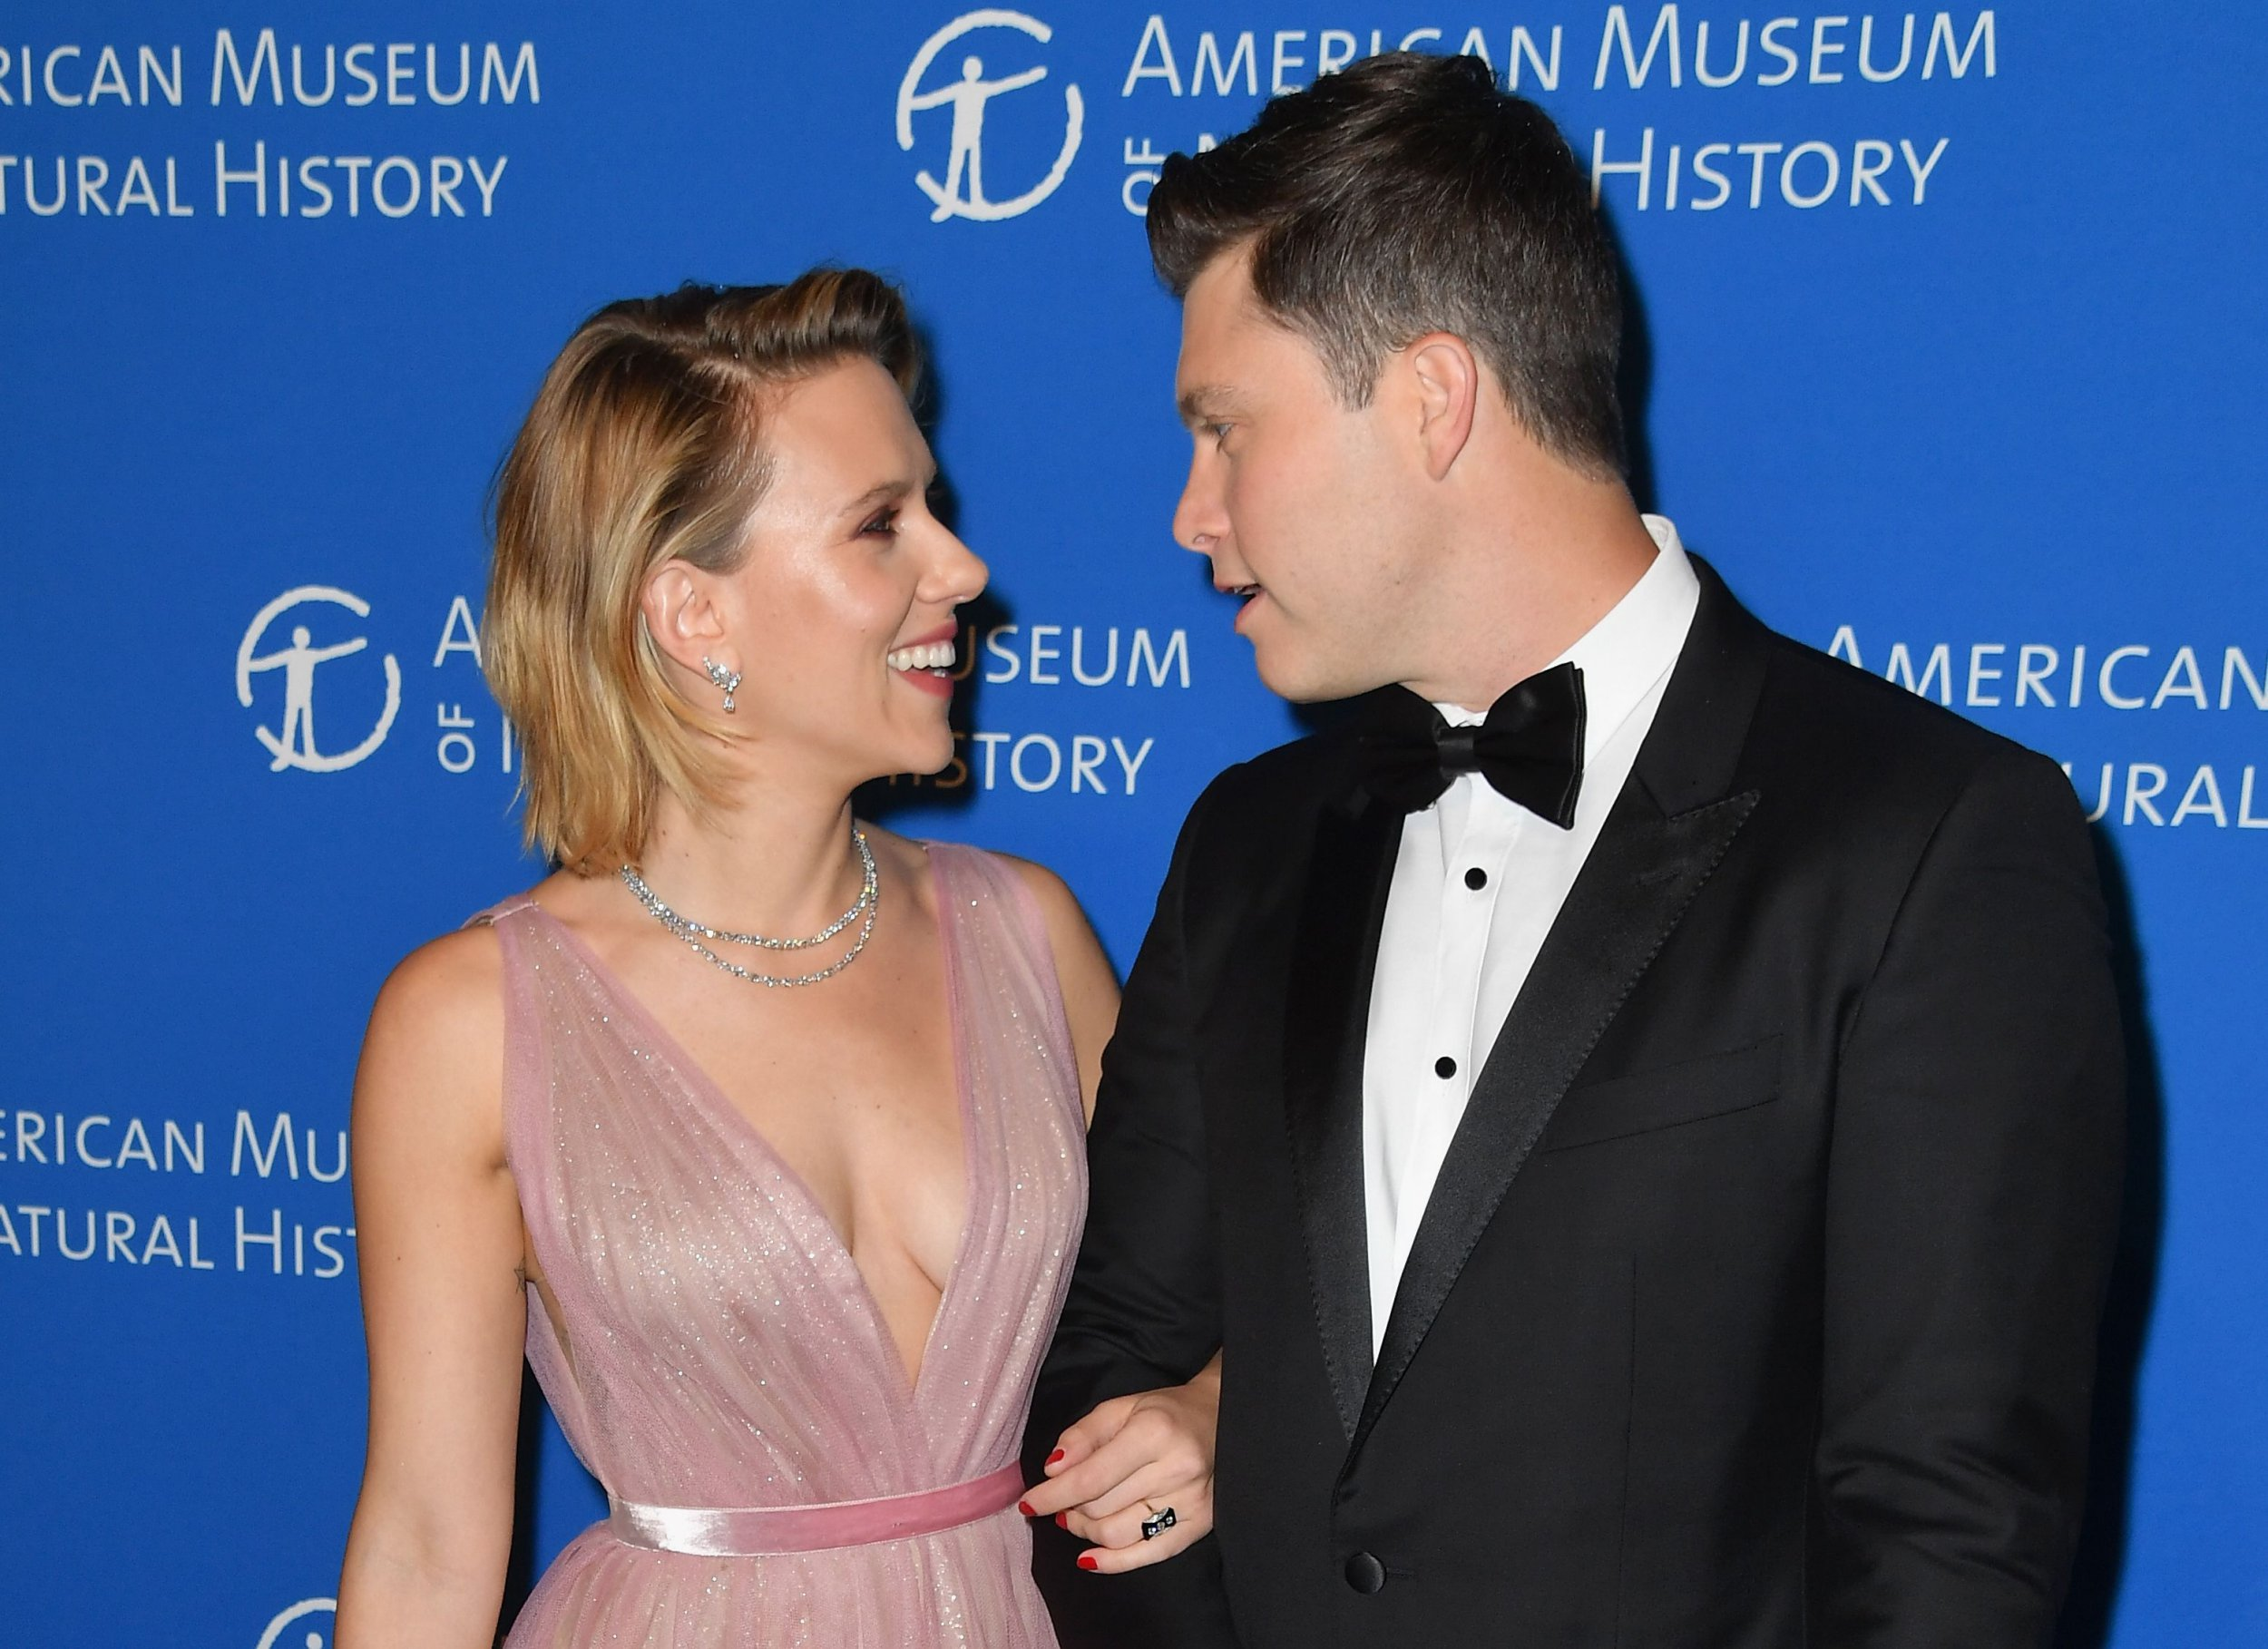 Actress Scarlett Johansson and boyfriend comedian Colin Jost attend the American Museum of Natural History's 2018 Museum Gala on November 15, 2018 in New York City. (Photo by Angela Weiss / AFP)ANGELA WEISS/AFP/Getty Images